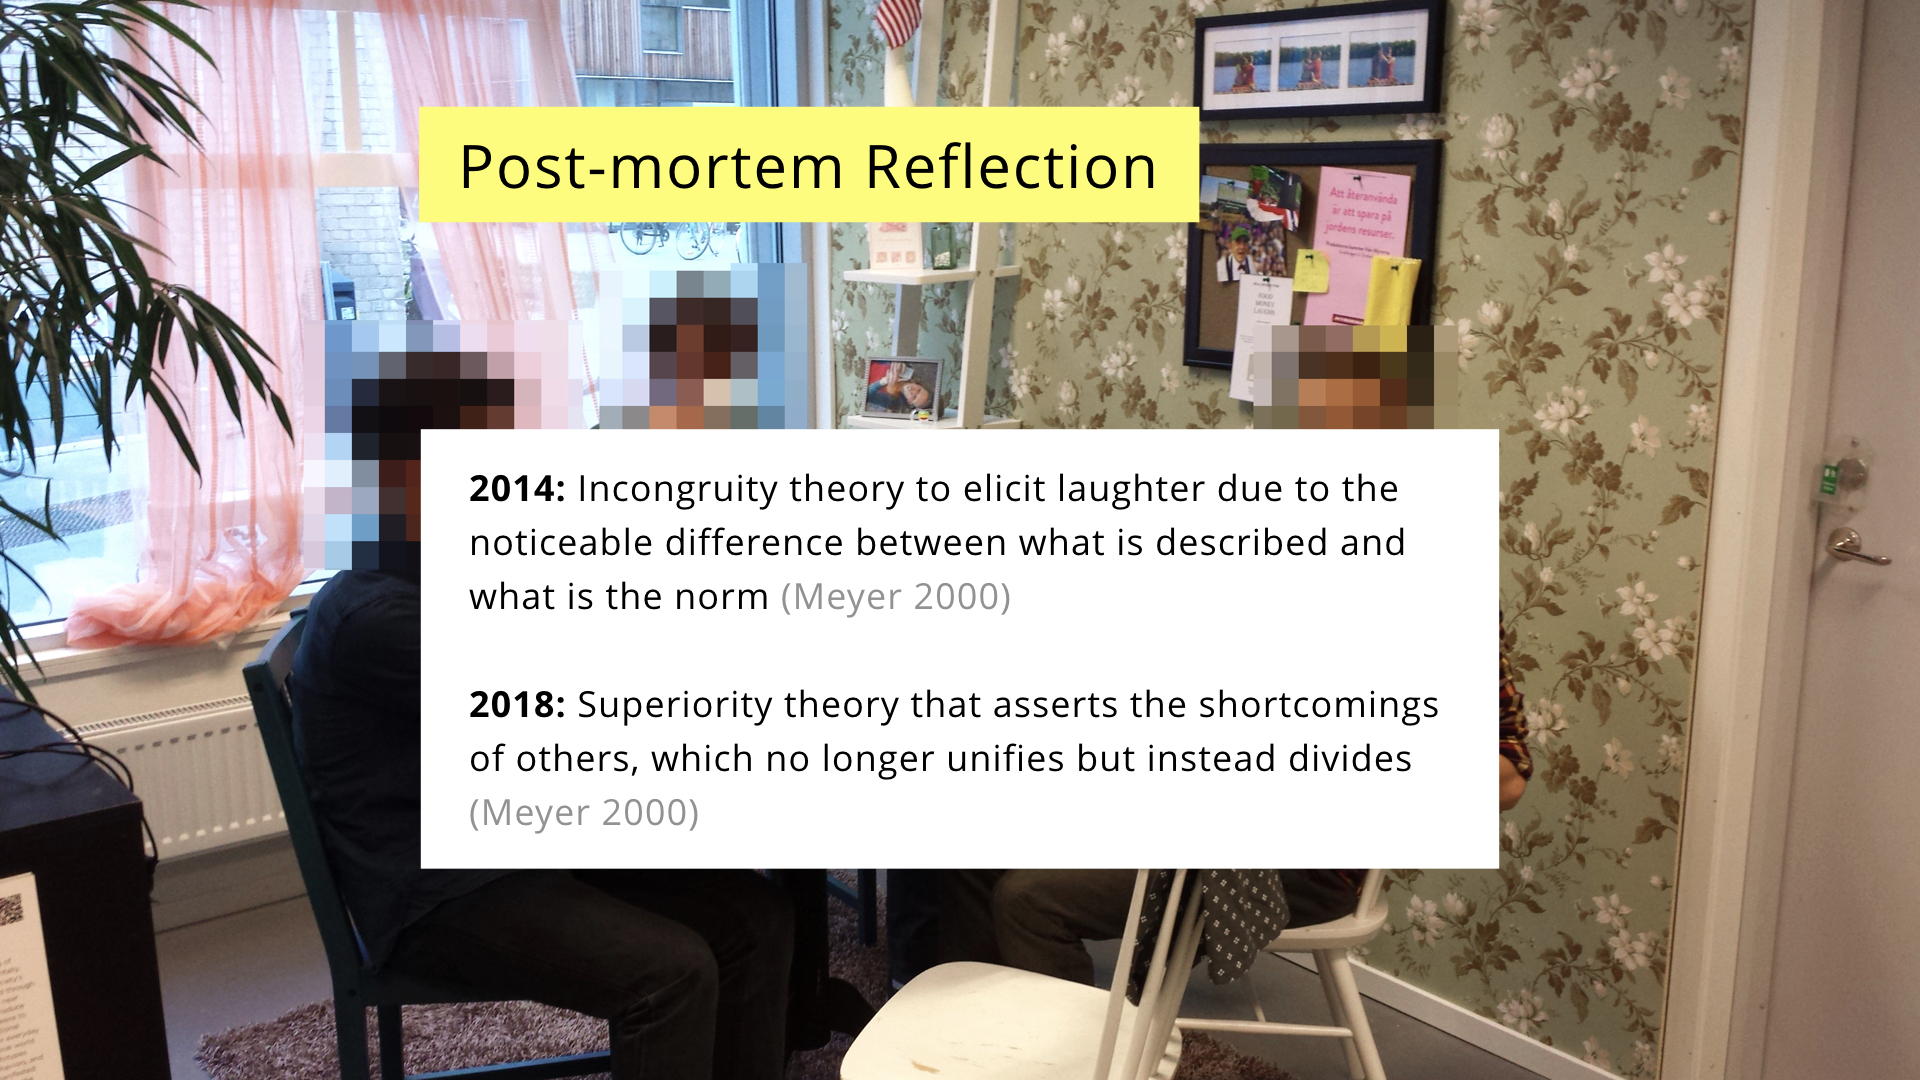 NordiCHI future scenarios presentation: Post-mortem reflection